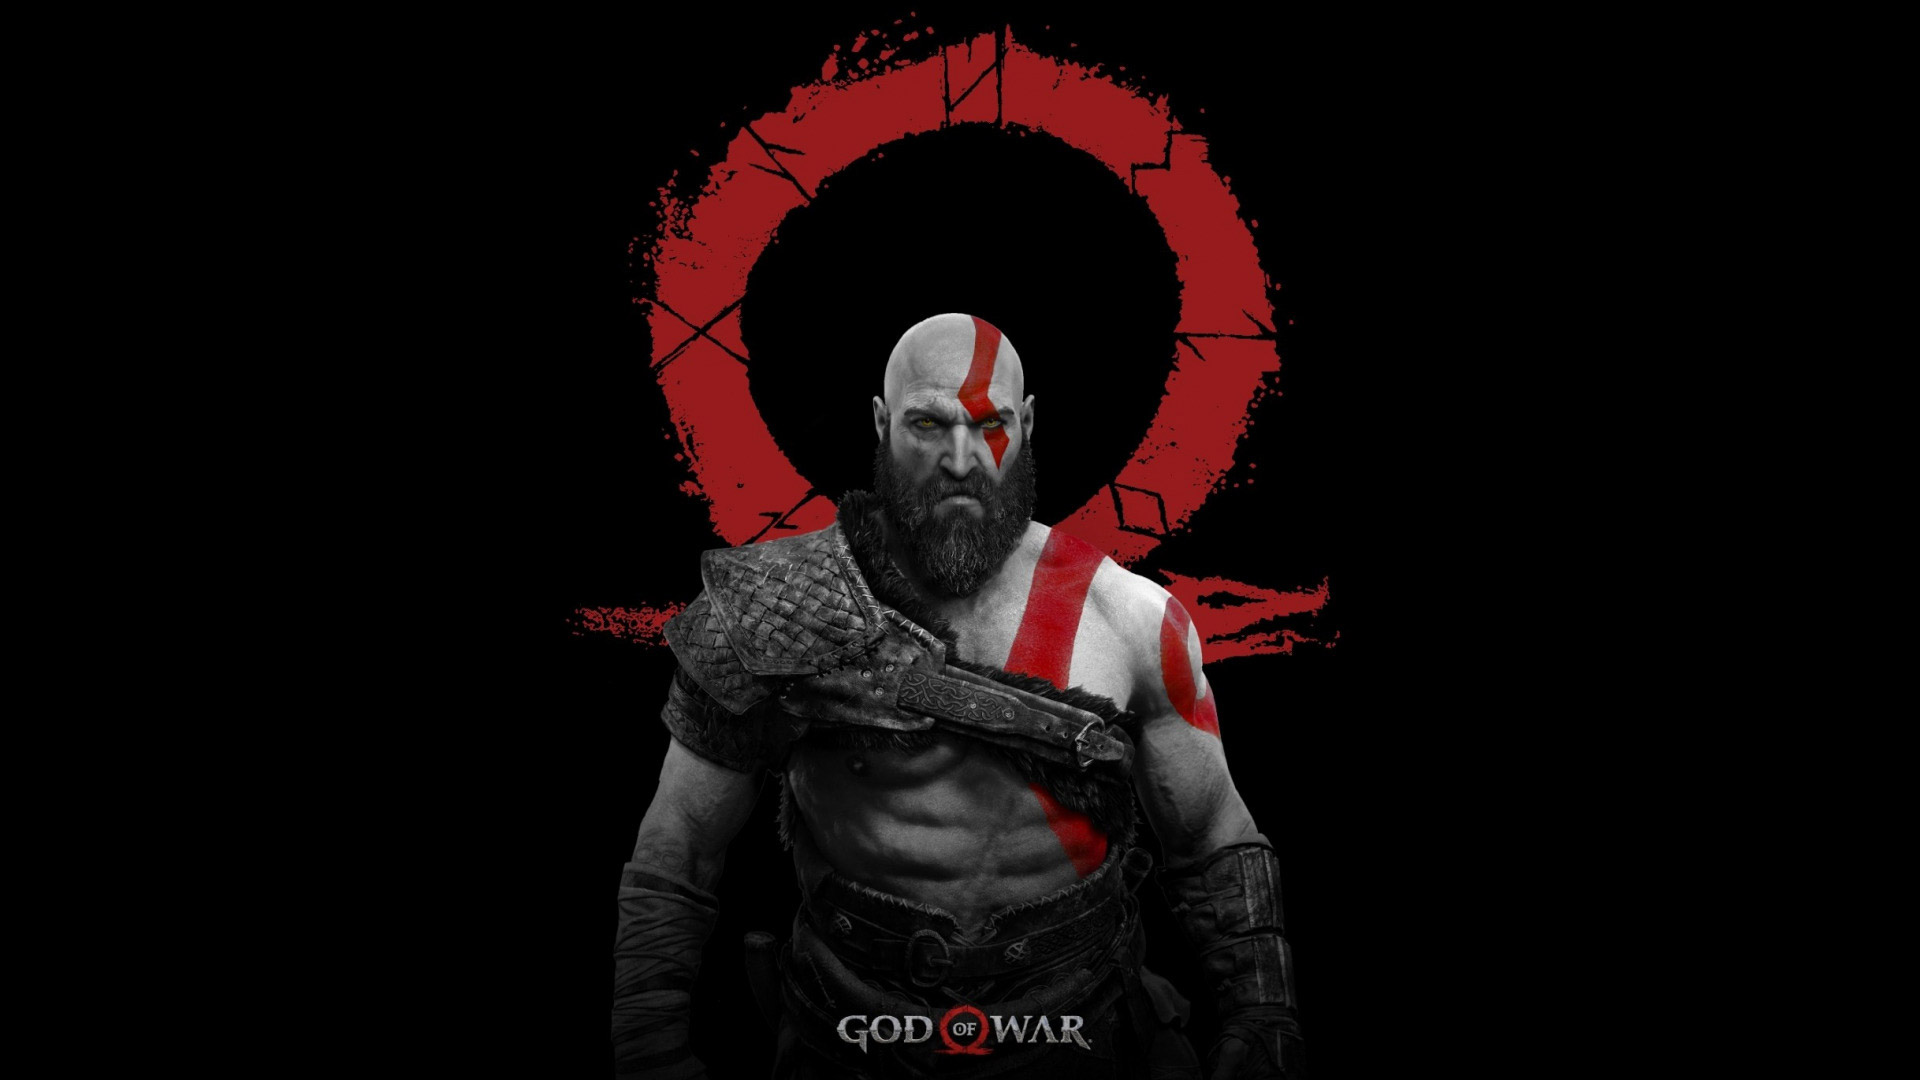 Free God of War (2018) Wallpaper in 1920x1080